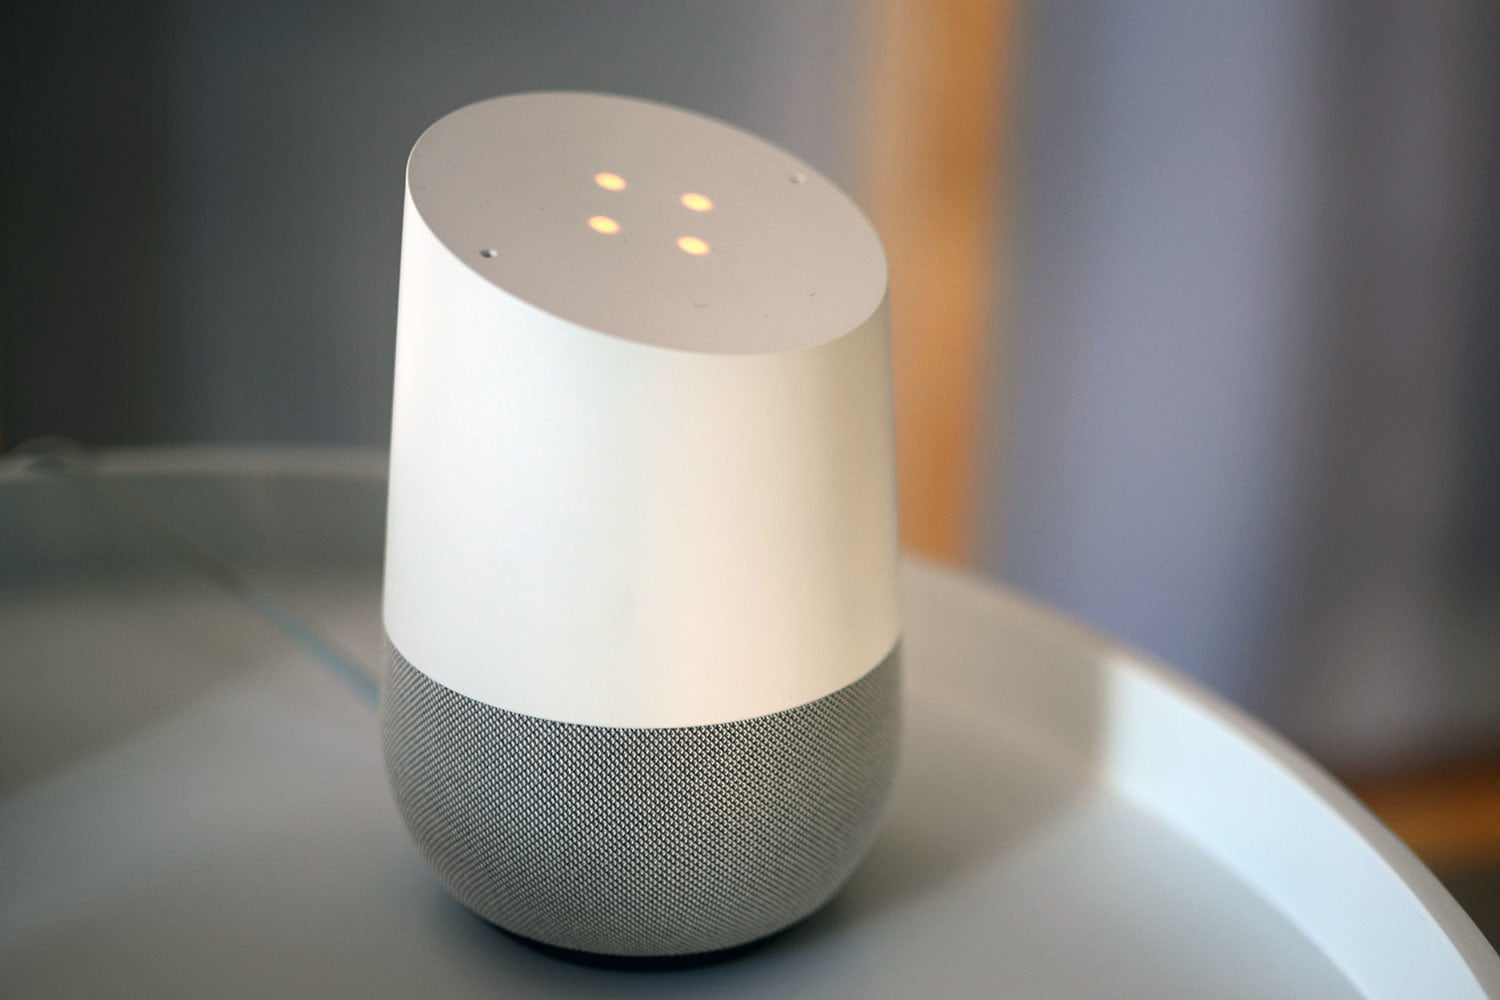 control google home from pc